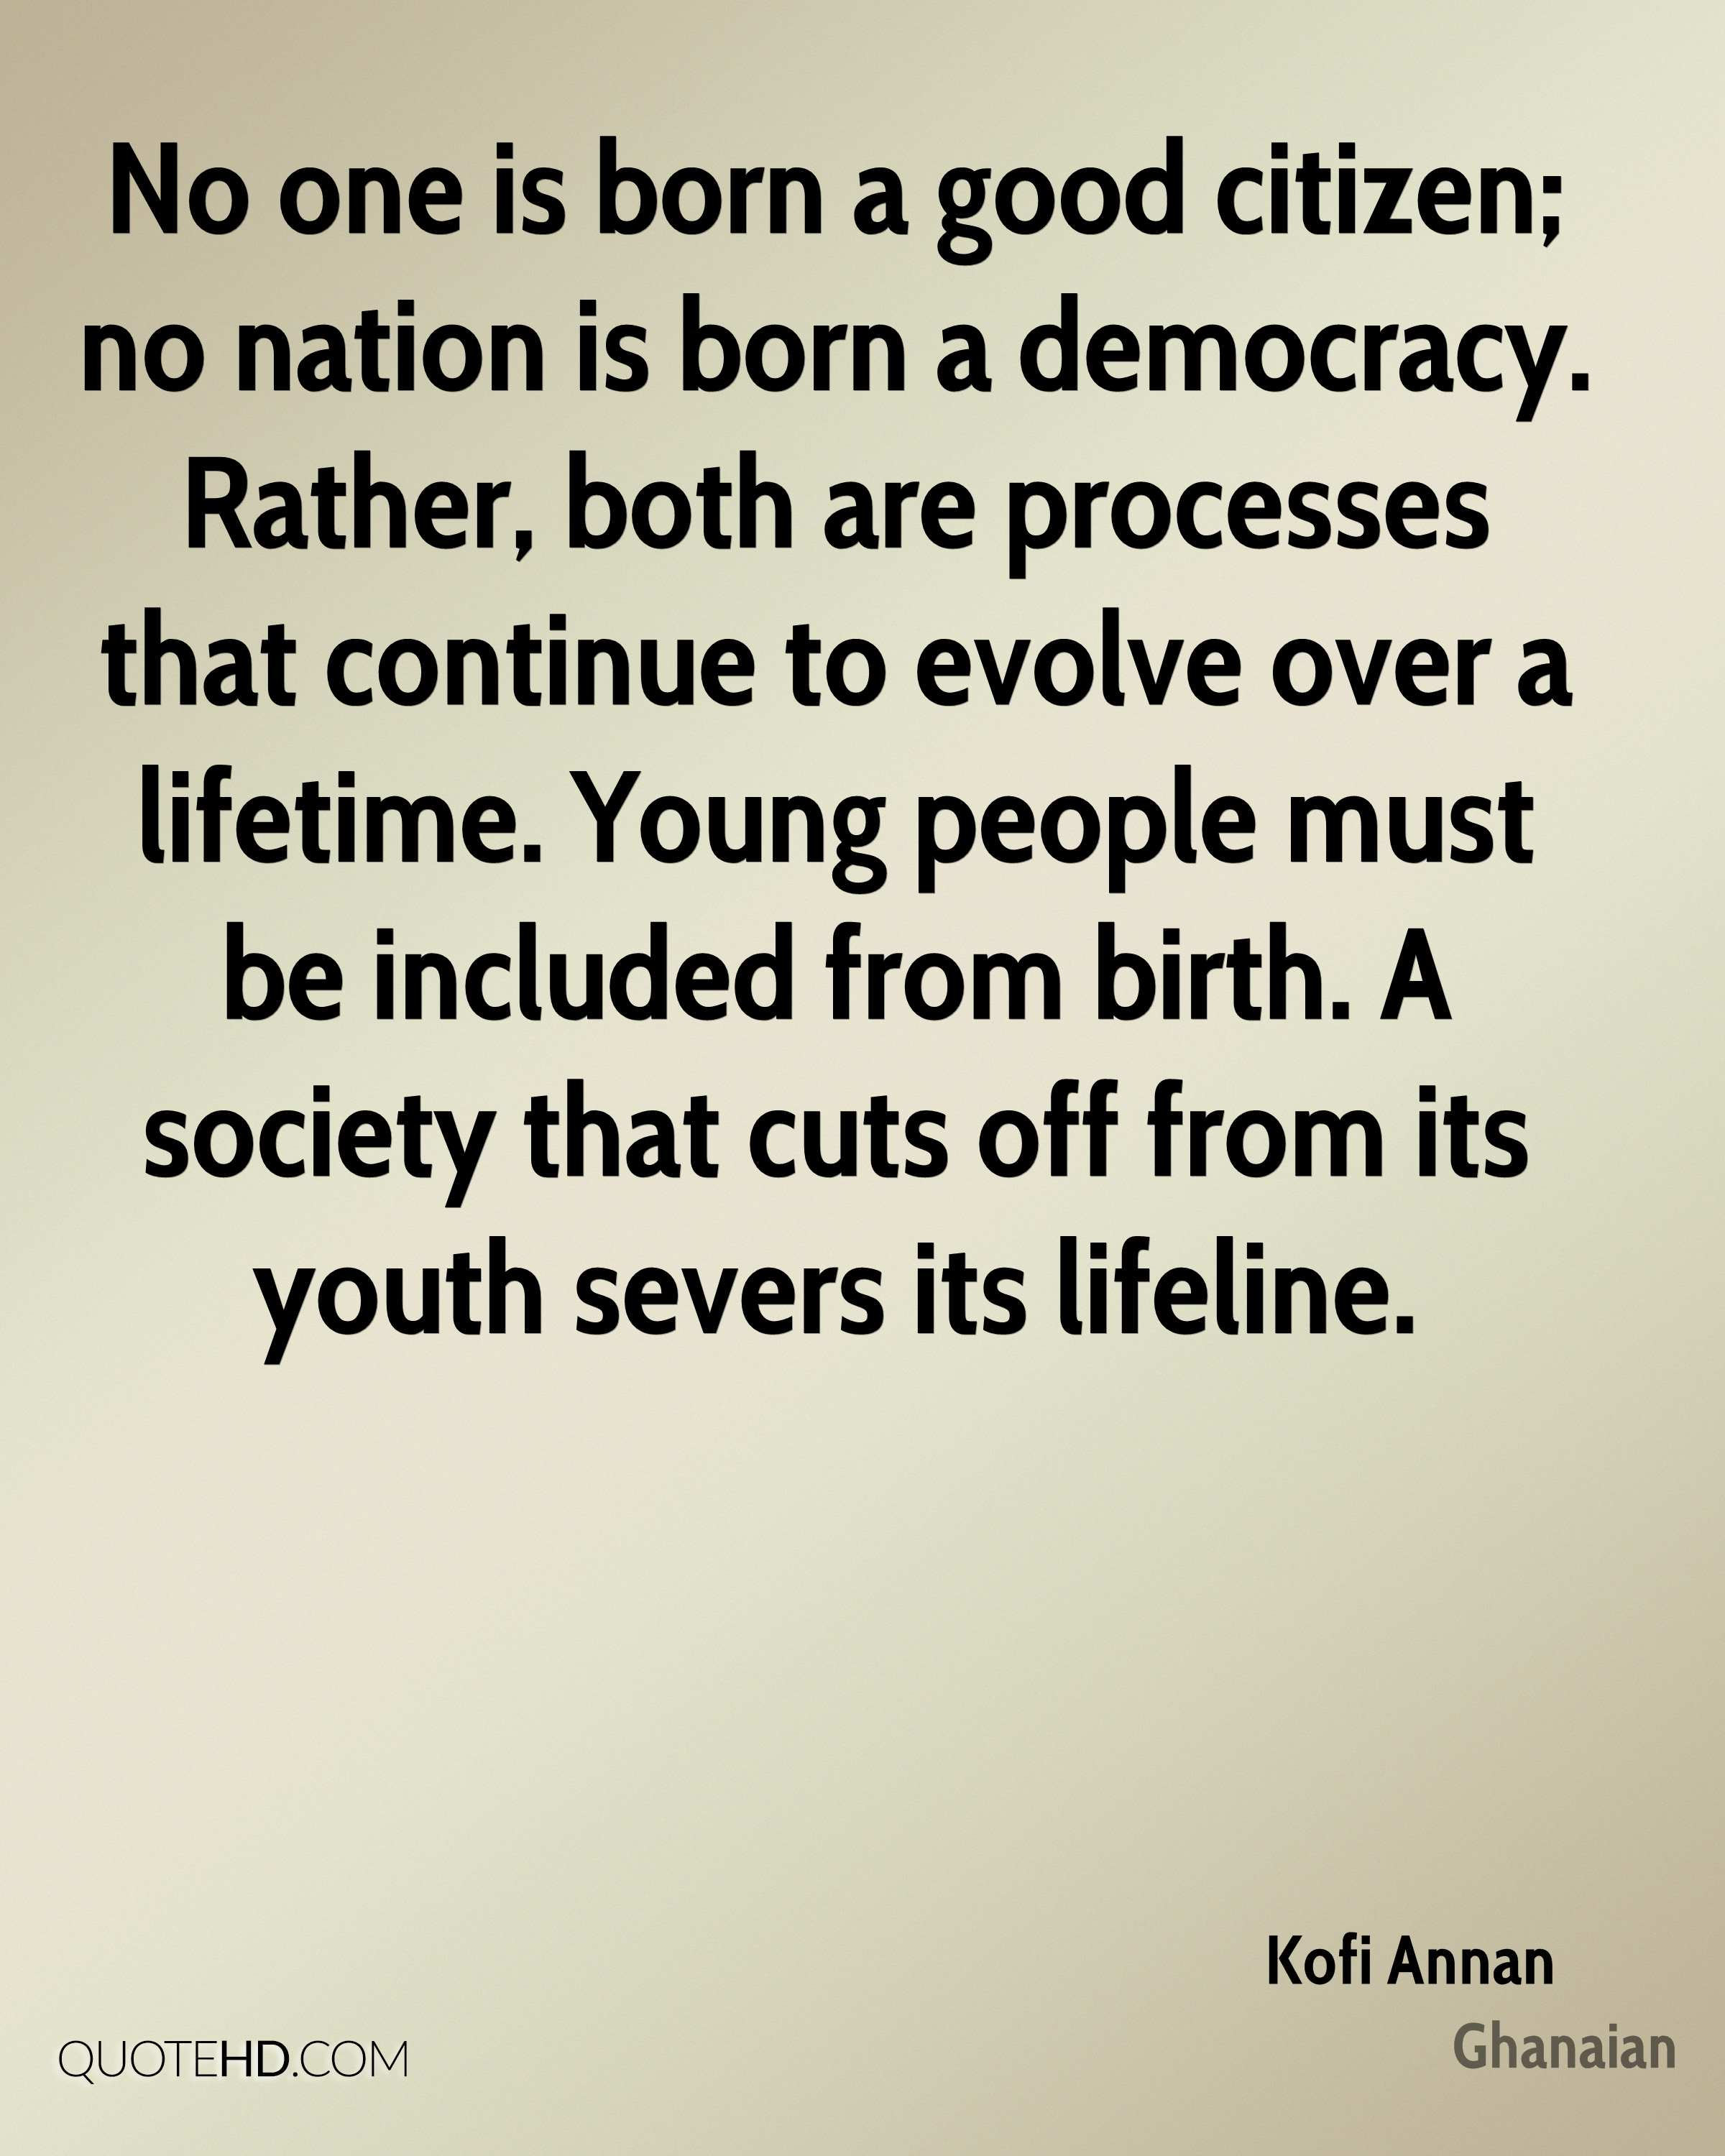 No one is born a good citizen; no nation is born a democracy. Rather, both are processes that continue to evolve over a lifetime. Young people must be included from birth. A society that cuts off from its youth severs its lifeline.